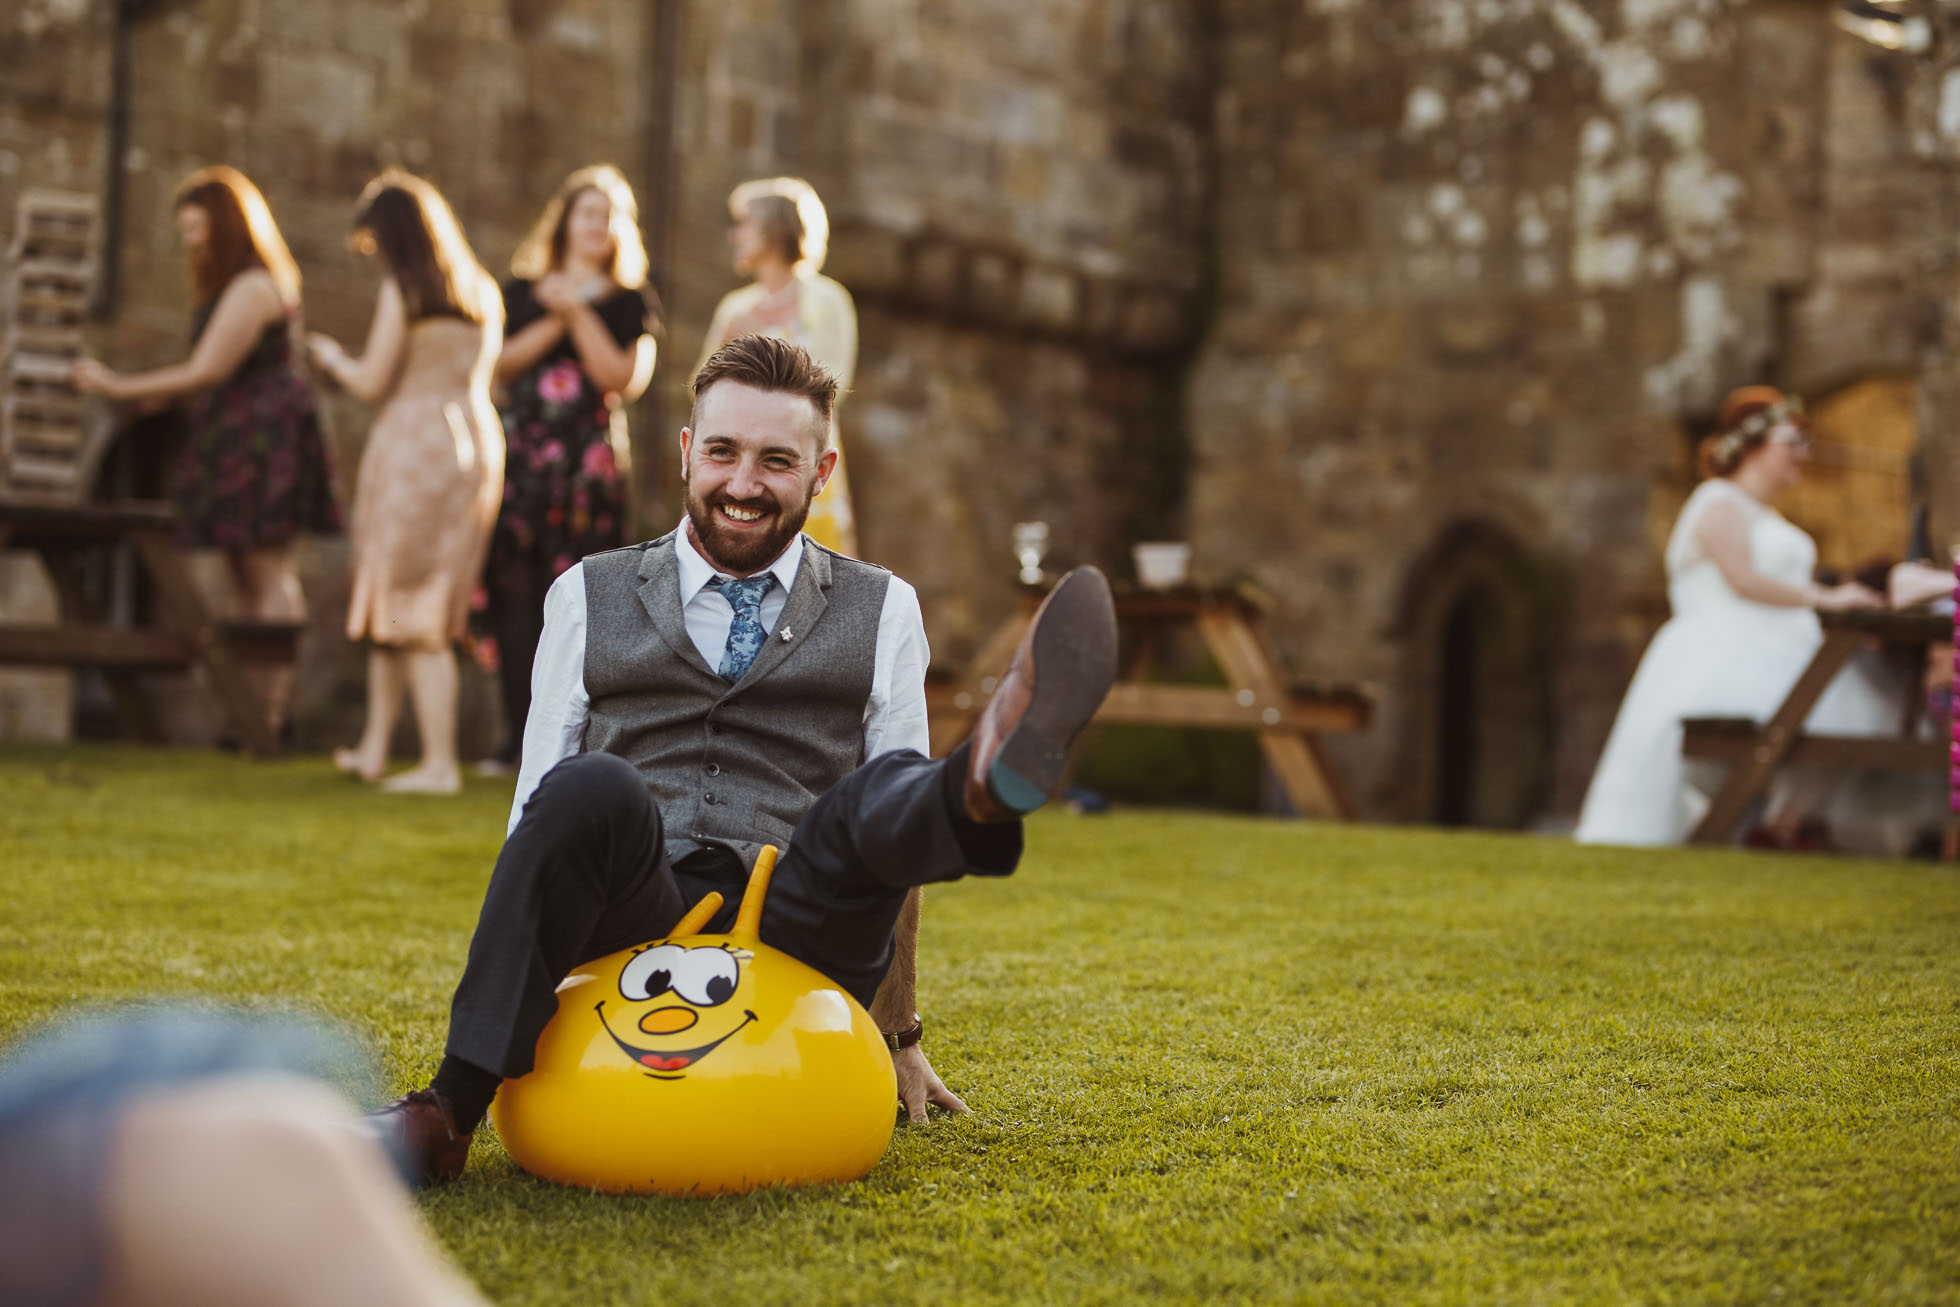 danby_castle_wedding_photographer-111.jpg